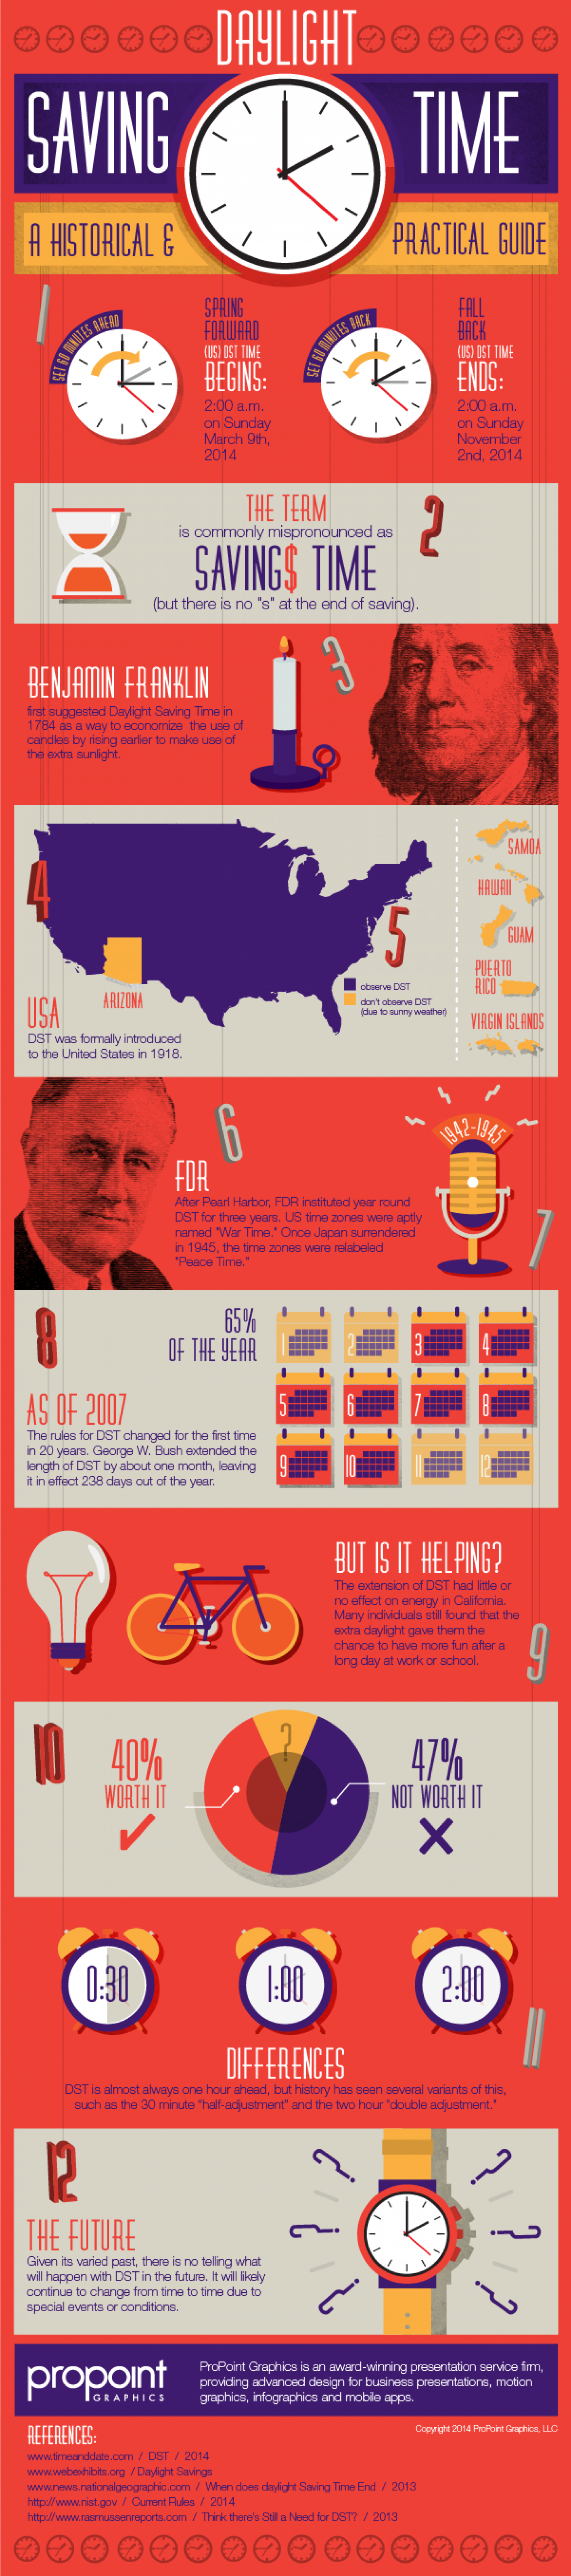 Daylight Saving Time - A Historical and Practical Guide Infographic